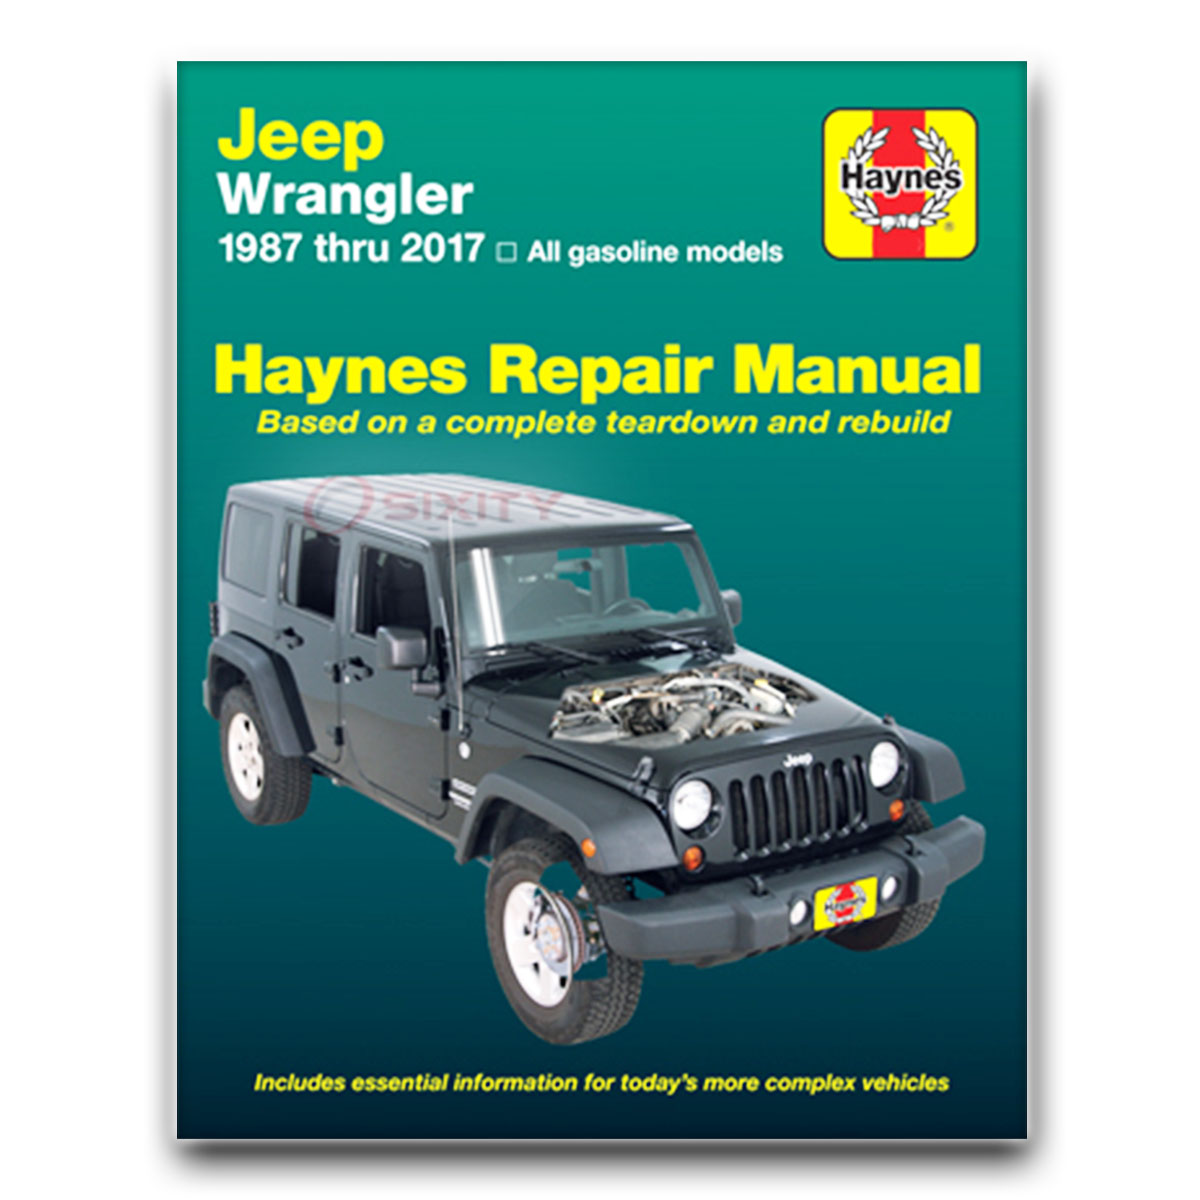 1995 jeep wrangler haynes repair manual